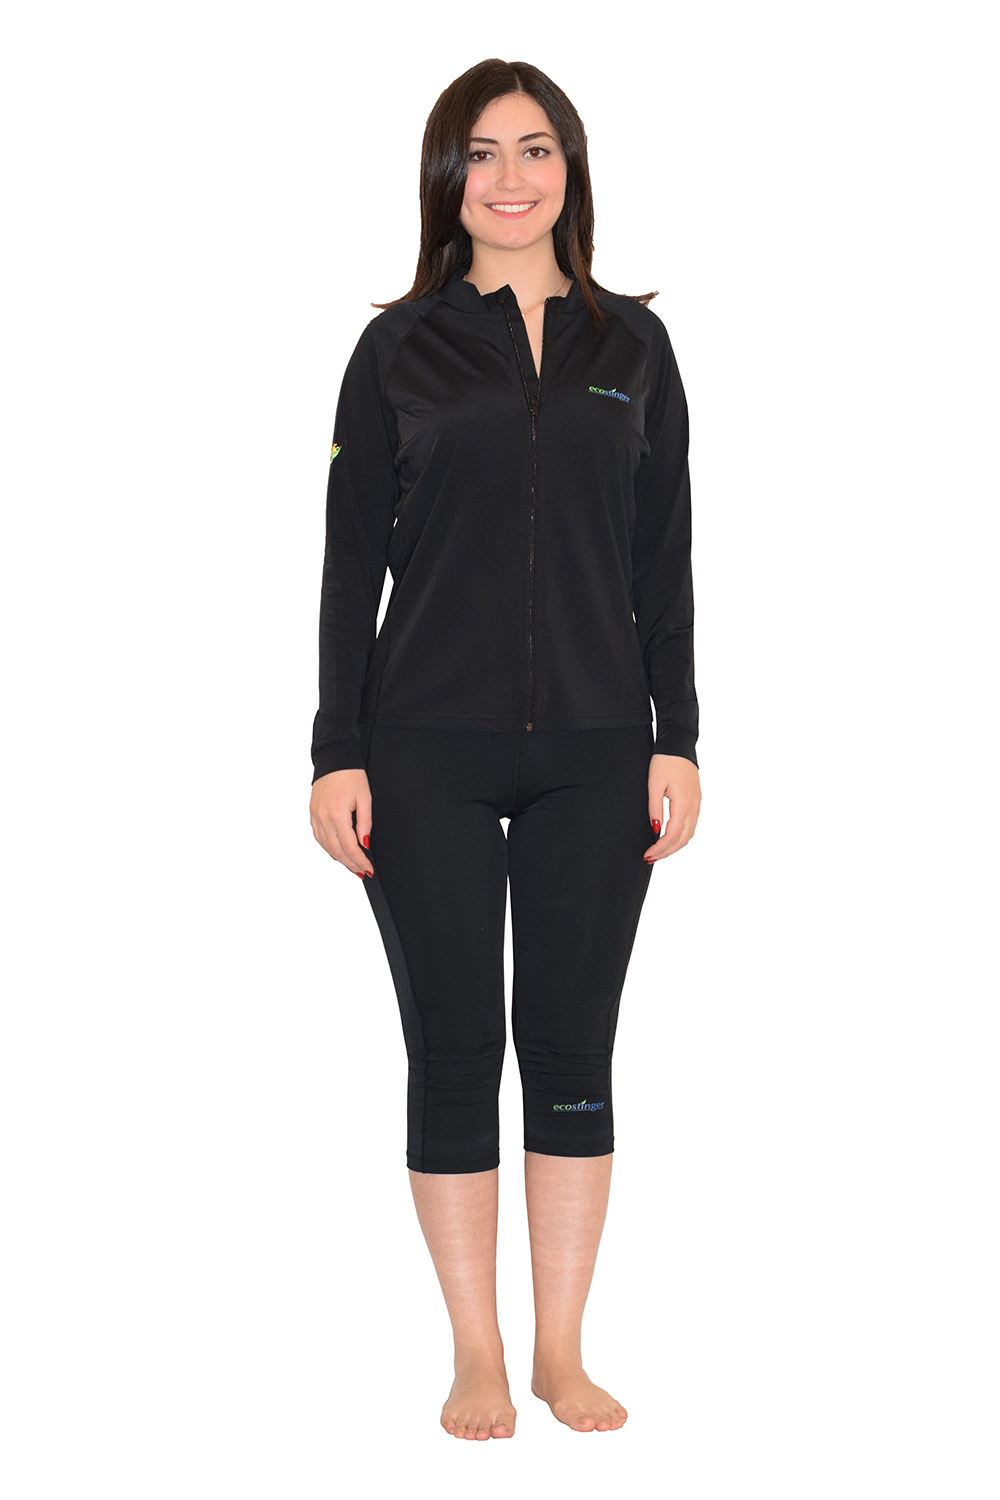 Women UV Protection Clothing Jacket Leggings